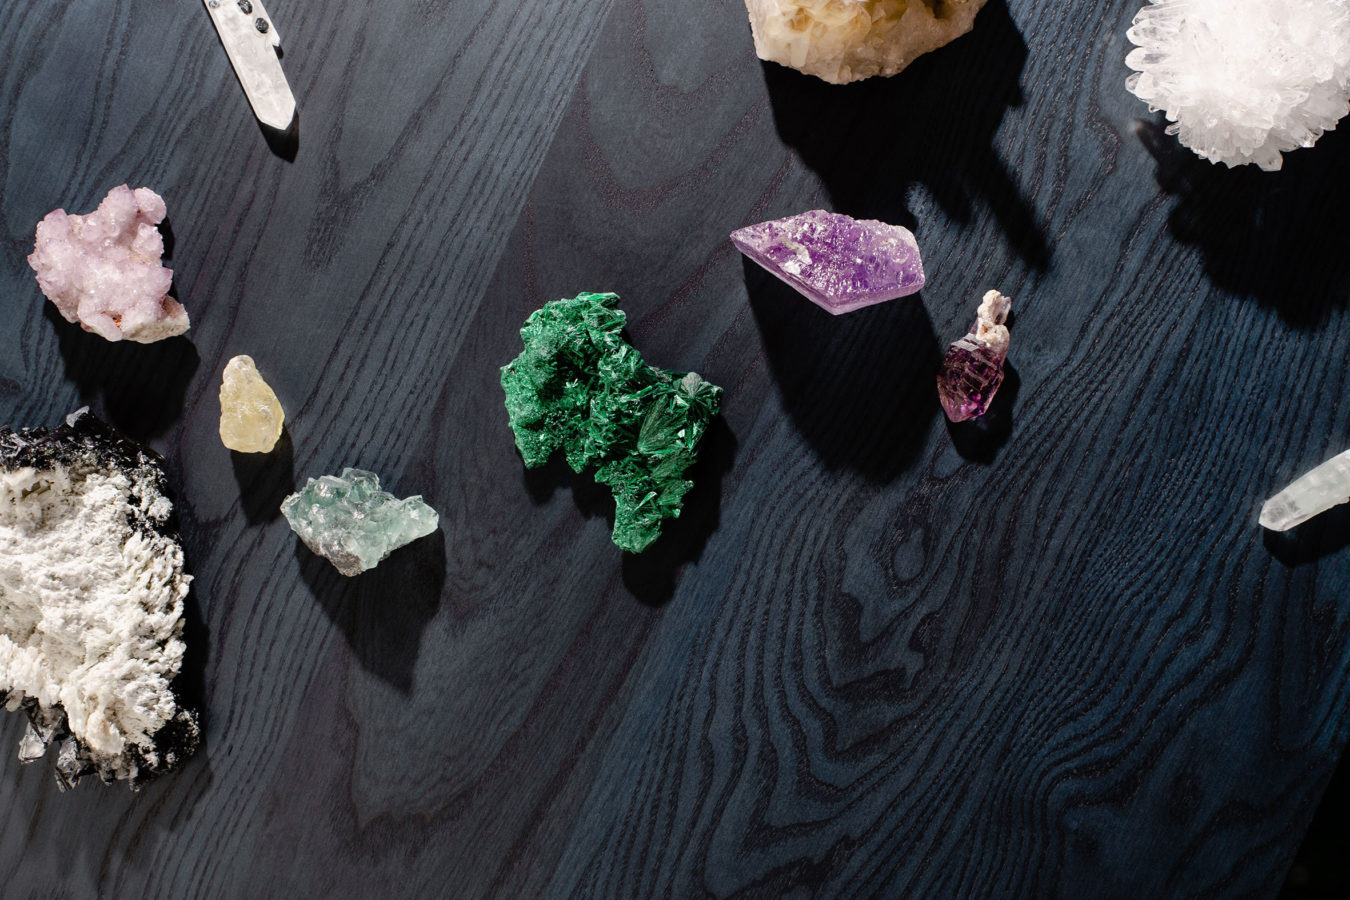 Crystal Healing: A Look at the Potent Powers Emanating from Our Jewellery